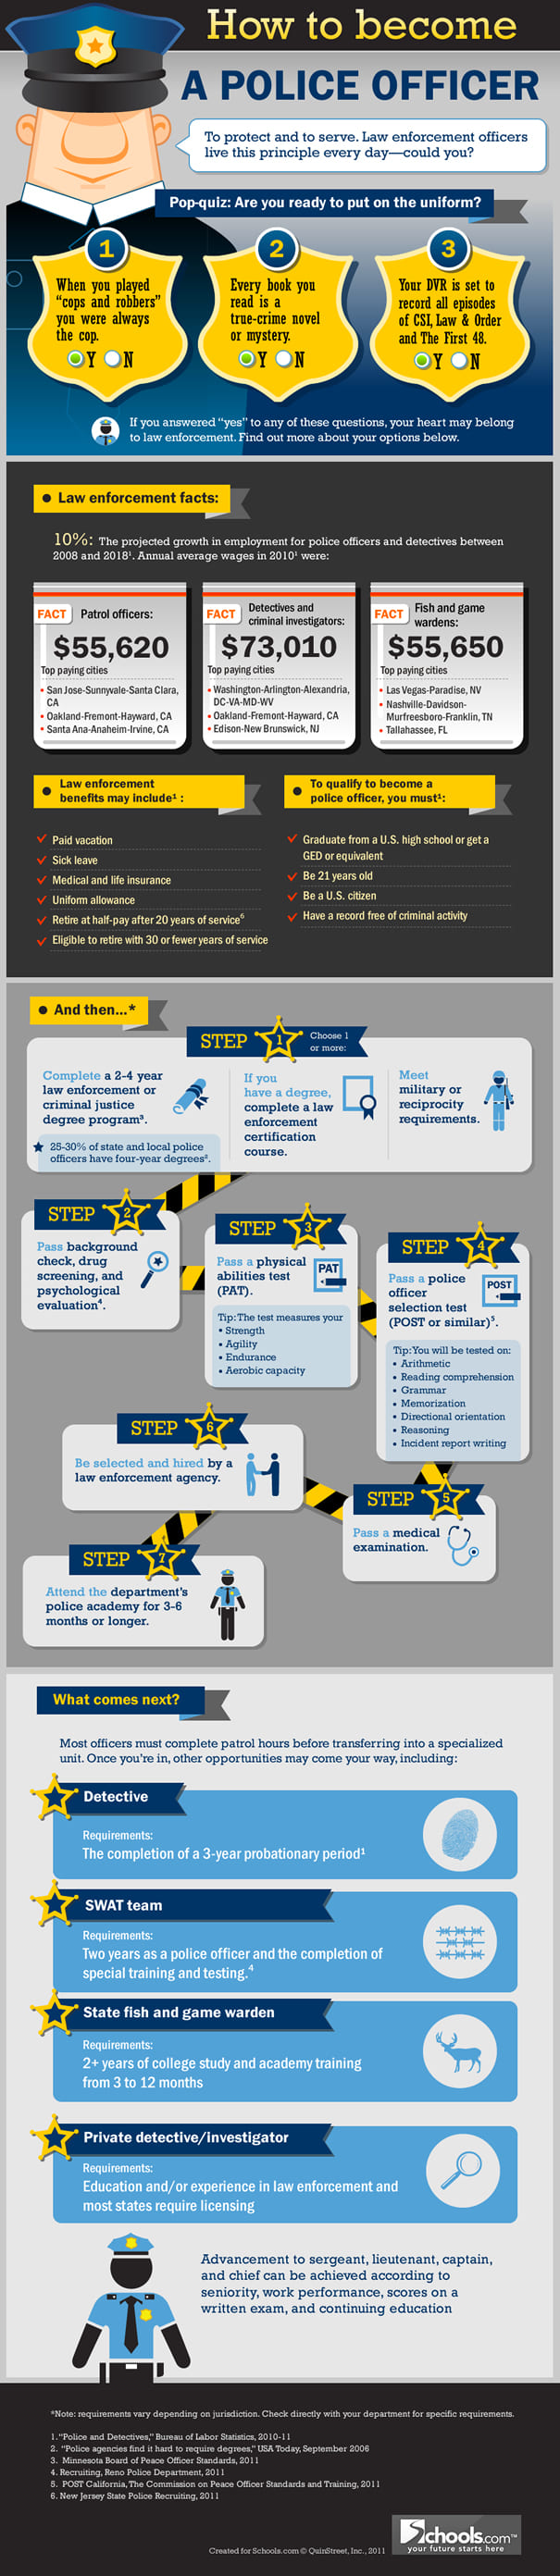 How to become a police officer infographic